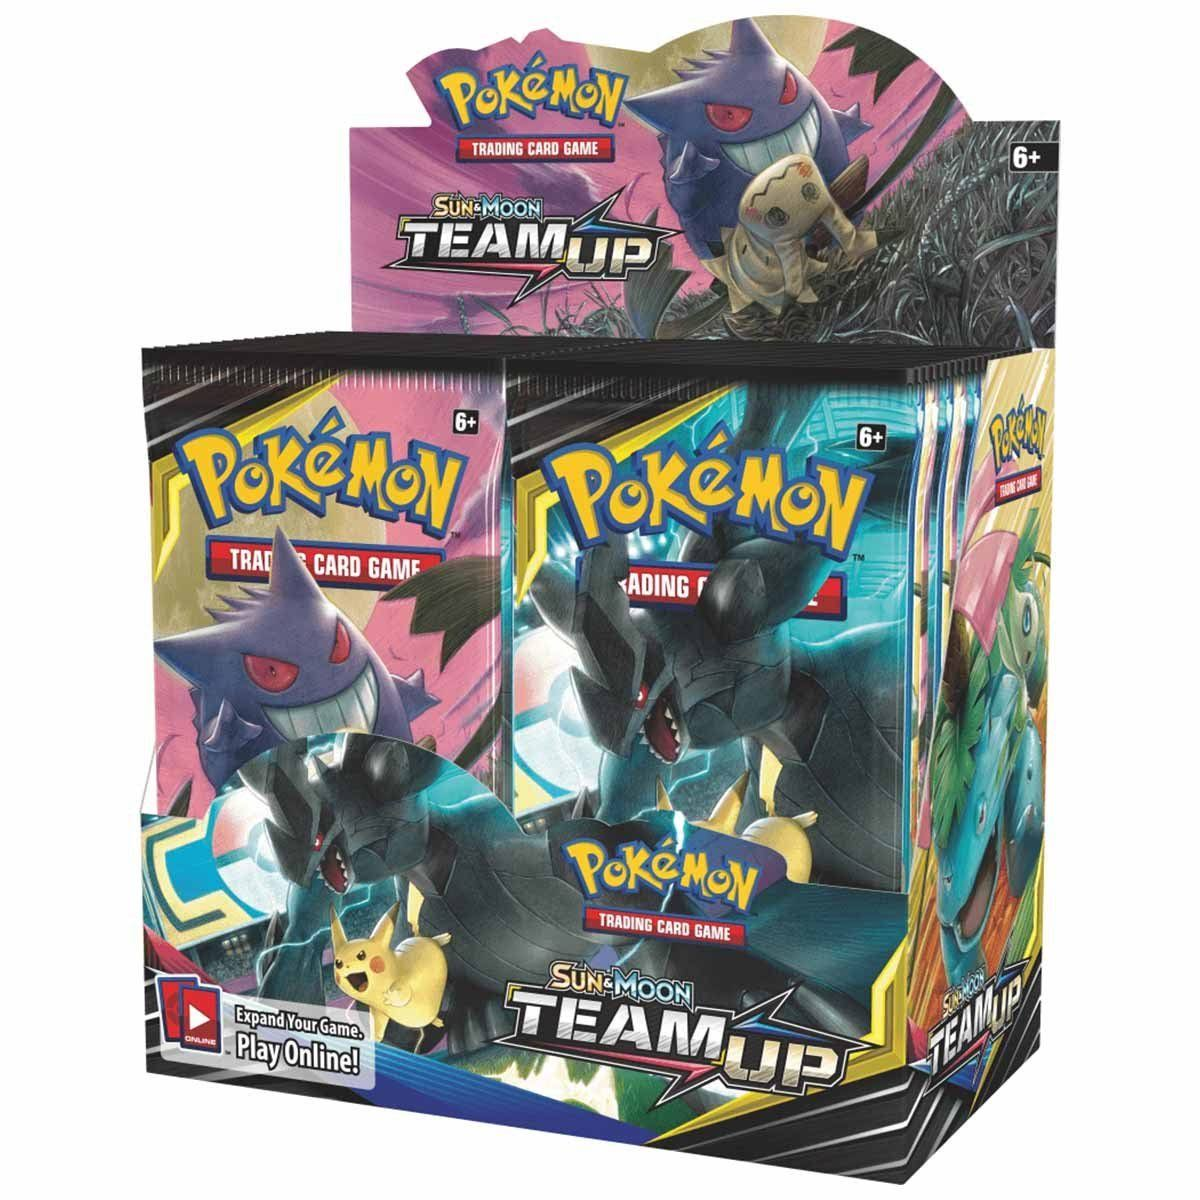 Pokemon Tcg: Sun & Moon Team Up Booster Box